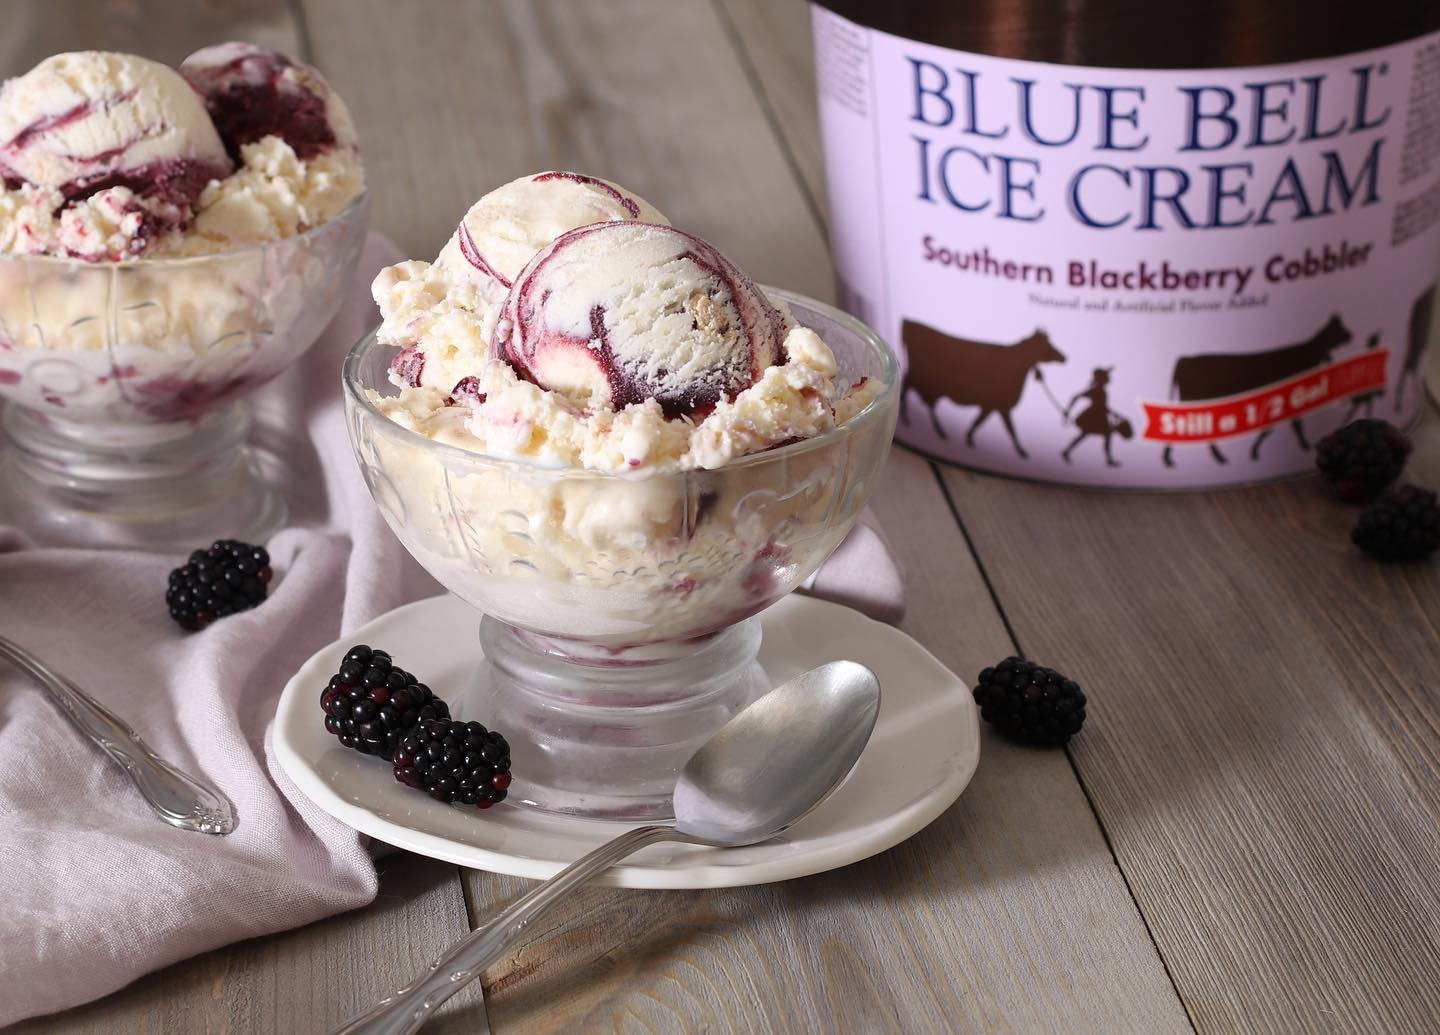 Blue Bell Southern Blackberry Cobbler